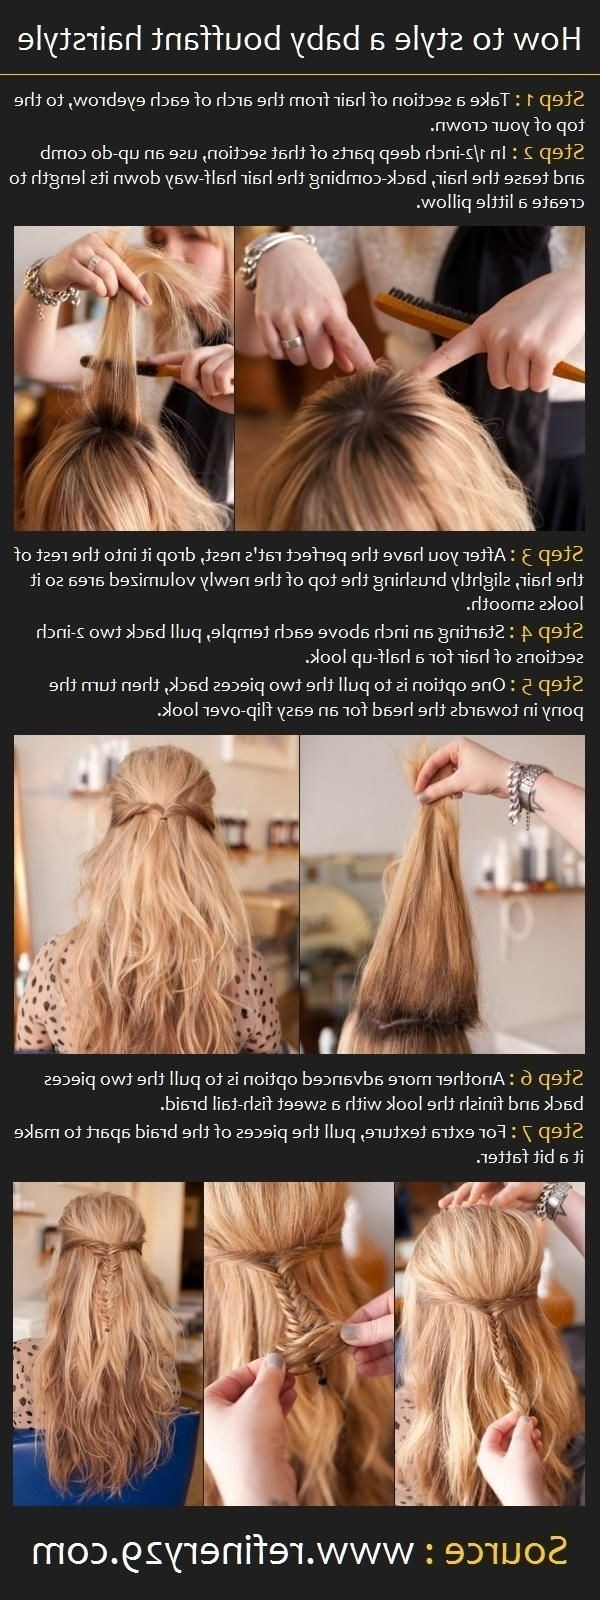 Cute Diy Hairstyles For School: Bouffant Hairstyle – Popular Haircuts Within Trendy Bouffant And Braid Ponytail Hairstyles (View 7 of 20)